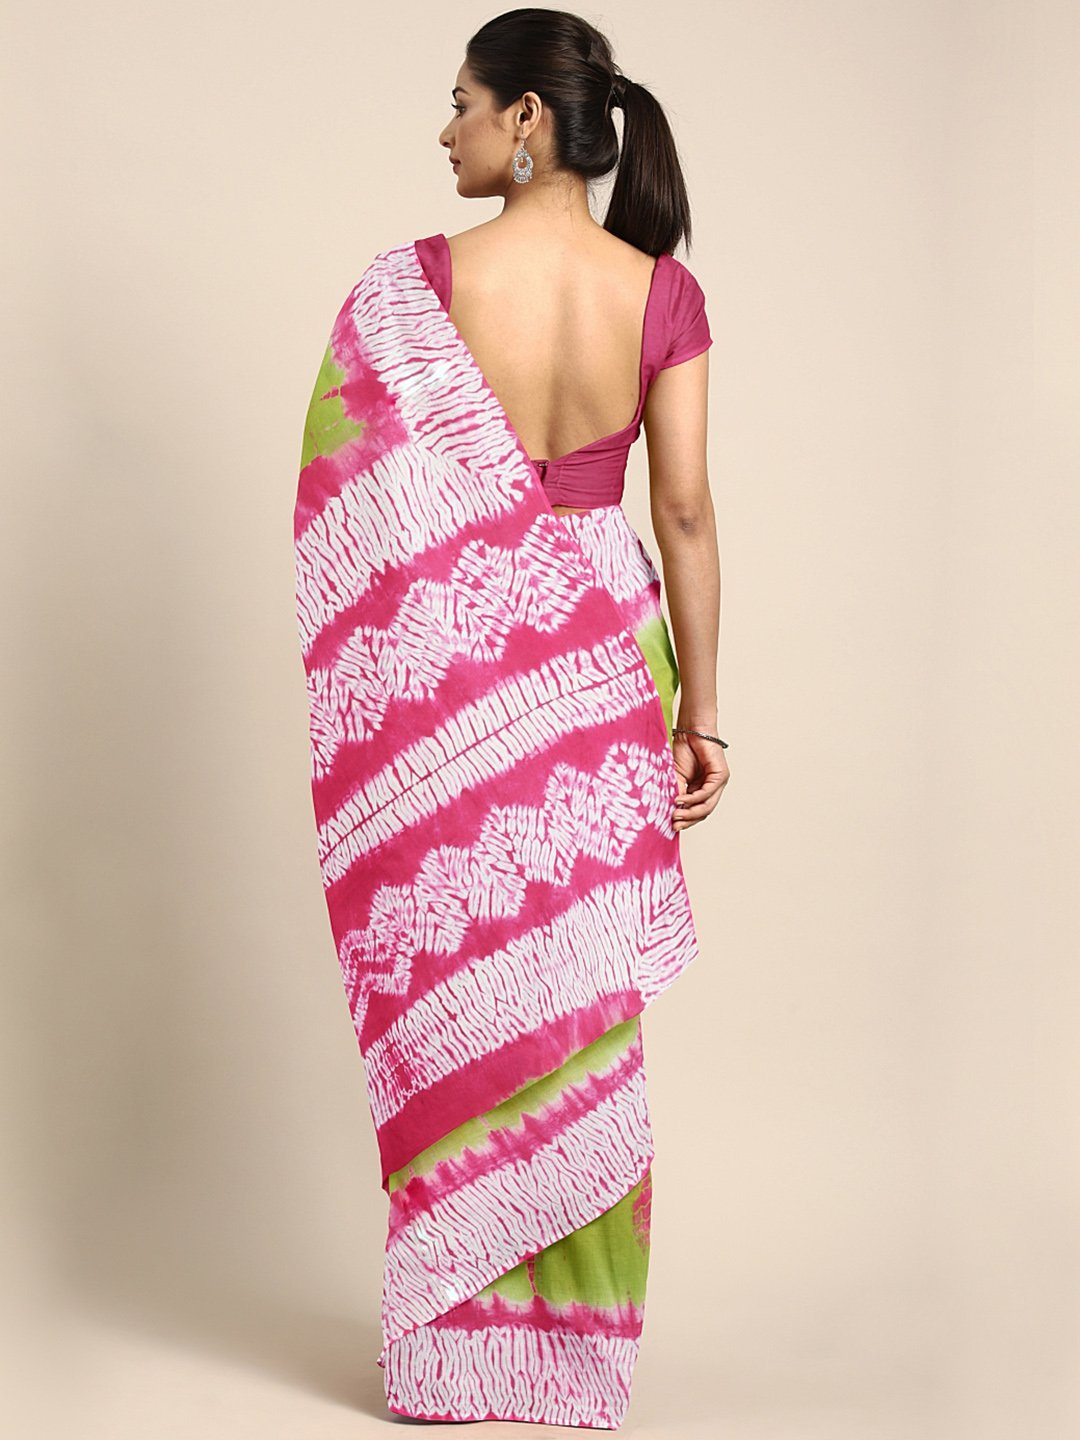 Green & Pink Shibori Tie & Dyed Handcrafted Cotton Saree-Saree-Kalakari India-BHKPSA0036-Cotton, Geographical Indication, Hand Blocks, Hand Crafted, Heritage Prints, Sarees, Shibori, Sustainable Fabrics-[Linen,Ethnic,wear,Fashionista,Handloom,Handicraft,Indigo,blockprint,block,print,Cotton,Chanderi,Blue, latest,classy,party,bollywood,trendy,summer,style,traditional,formal,elegant,unique,style,hand,block,print, dabu,booti,gift,present,glamorous,affordable,collectible,Sari,Saree,printed, holi, Diw